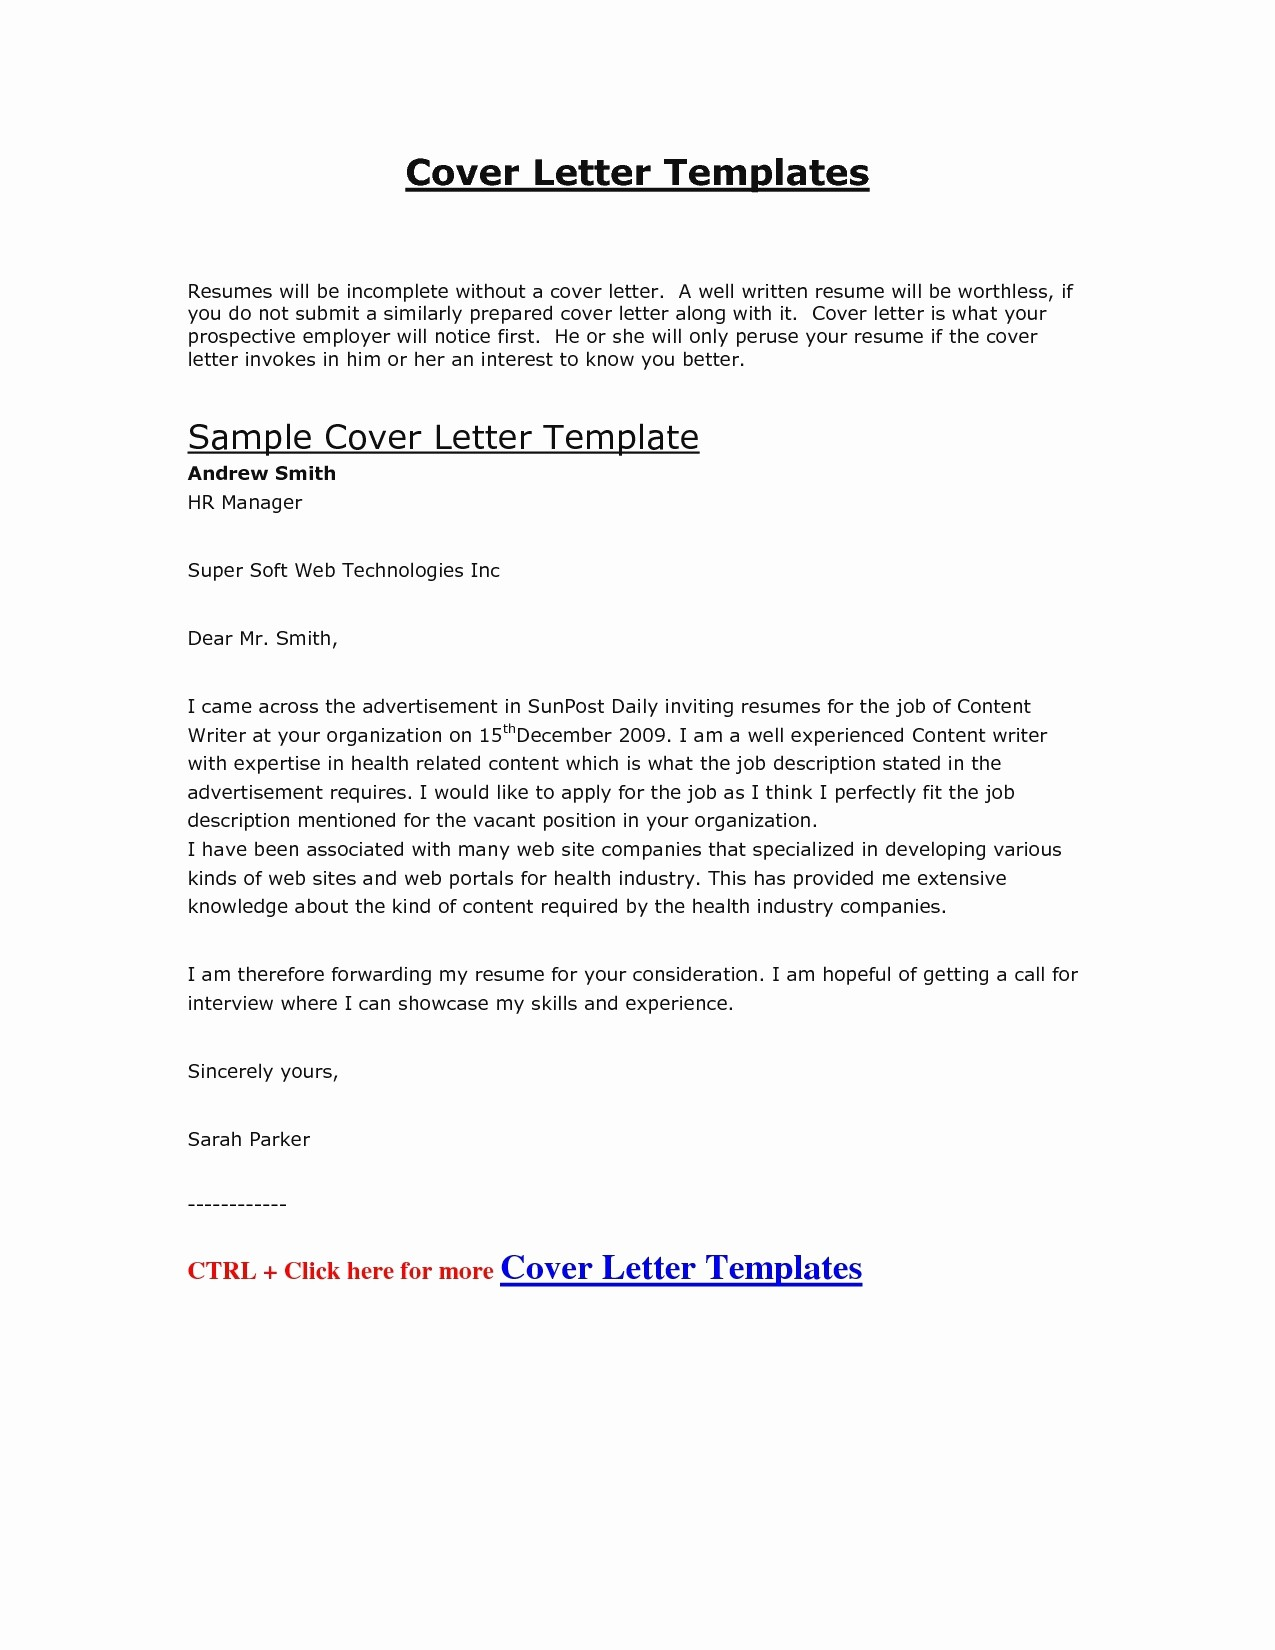 Resume and Cover Letter Templates Inspirational Resume Cover Letter Template 2017